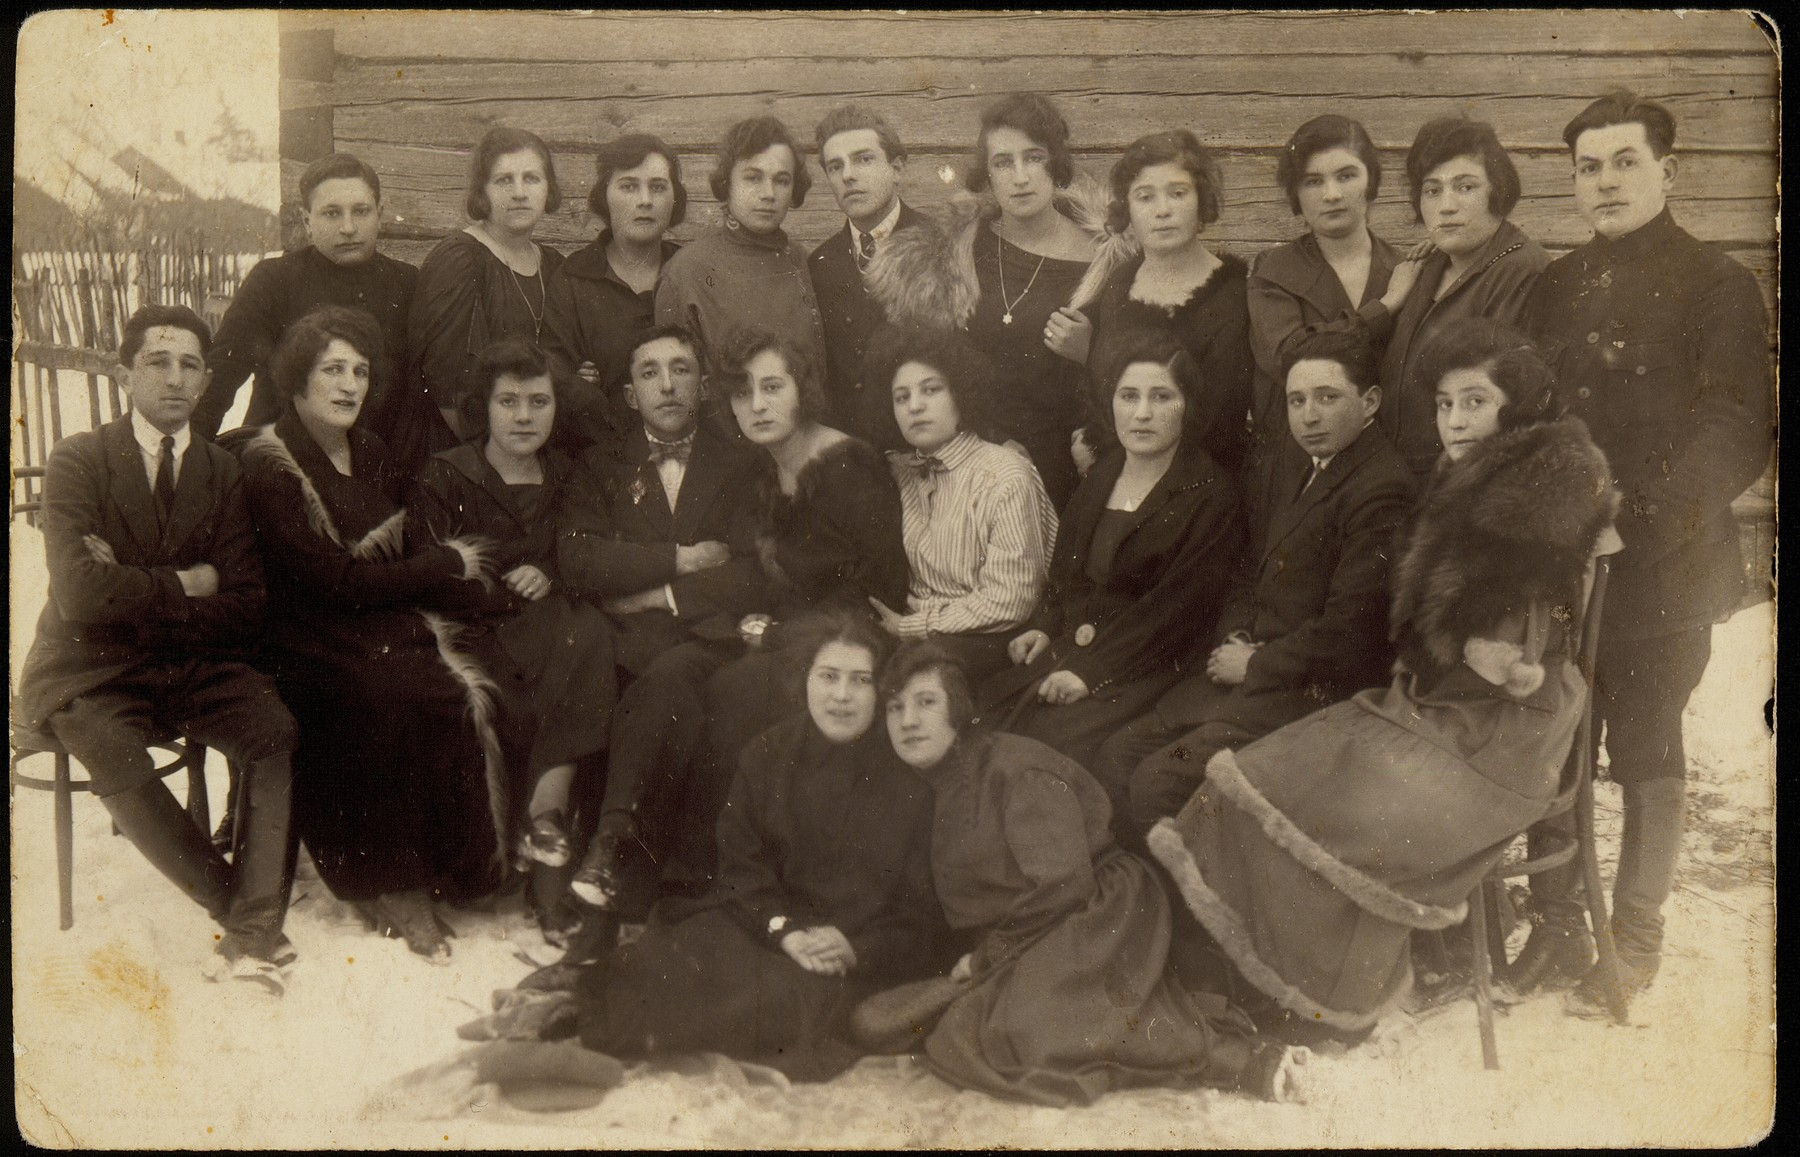 A group of young people pose outdoors in the snow.   Standing at the far right, Israel Pogarelsky.  The man in the middle is Uri Rozowski and on the far left is Leibe Glombocki.  Middle row, from right to left:  Hannah Koppelman Pogarelsky, Naftali Berkowicz, unknown, Rachel Kaleko, Dora Zlotnik Berkowitch, Shlomo Kiuchefski, others are unknown. Sitting on the ground, on the left, is Bat-Sheva Rozowski.    Uri Rozowski, Naftali Berkowicz, Rachel Kaleko, Dora Zlotnik Berkowitch immigrated to Palestine.  Shneur Glombocki survived the Holocaust as a partisan. Shlomo Kiuchefski was murdered by members of the Polish Home Army.  Israel Pogarelsky was murdered in the Radun ghetto; his wife Hannah Koppelman and their children also perished during the Holocaust. Bat-Sheva Rozowski and her family were murdered in Treblinka.  The fate of others is unknown.